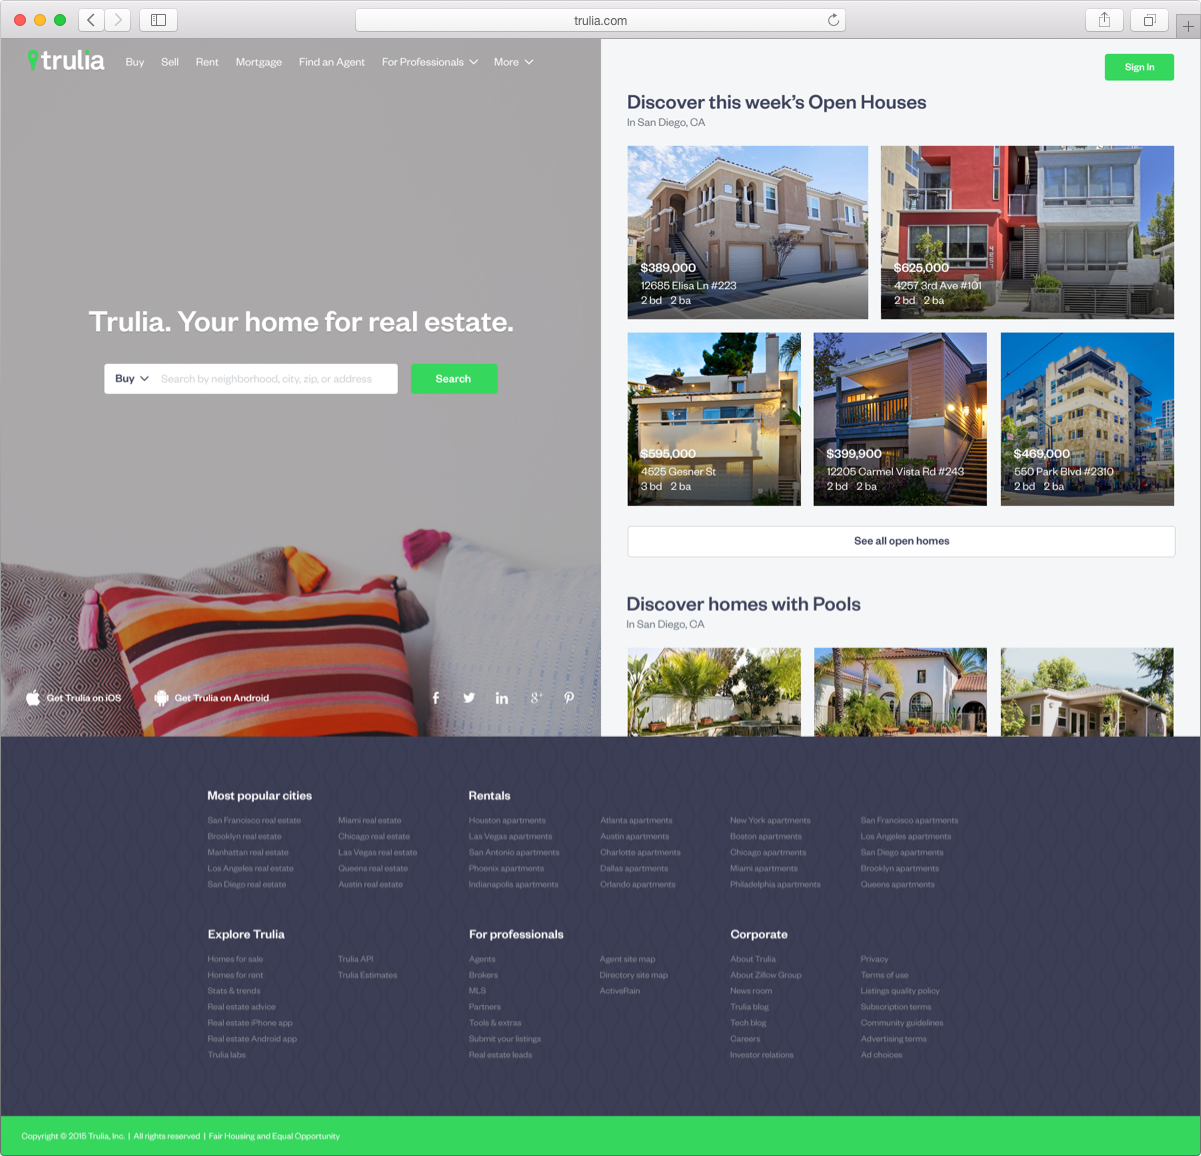 Trulia homepage redesign to cater towards first time homebuyers and improve lead generation